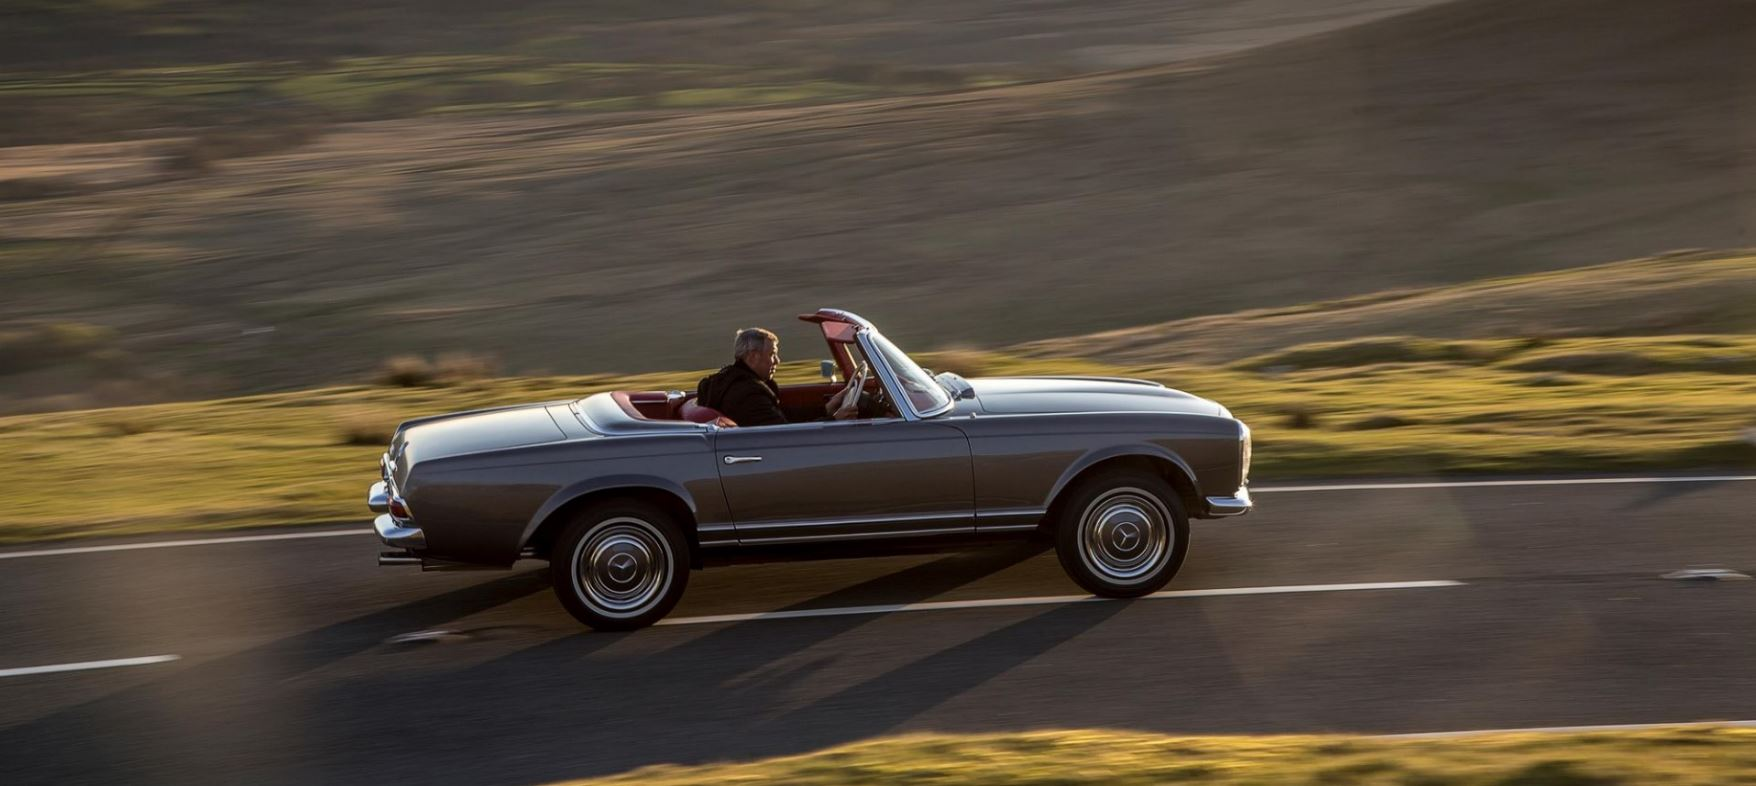 Classic 1971 Mercedes-Benz W113 280SL Pagoda Roadster in Anthracite with red interior driving in mountains in Wales